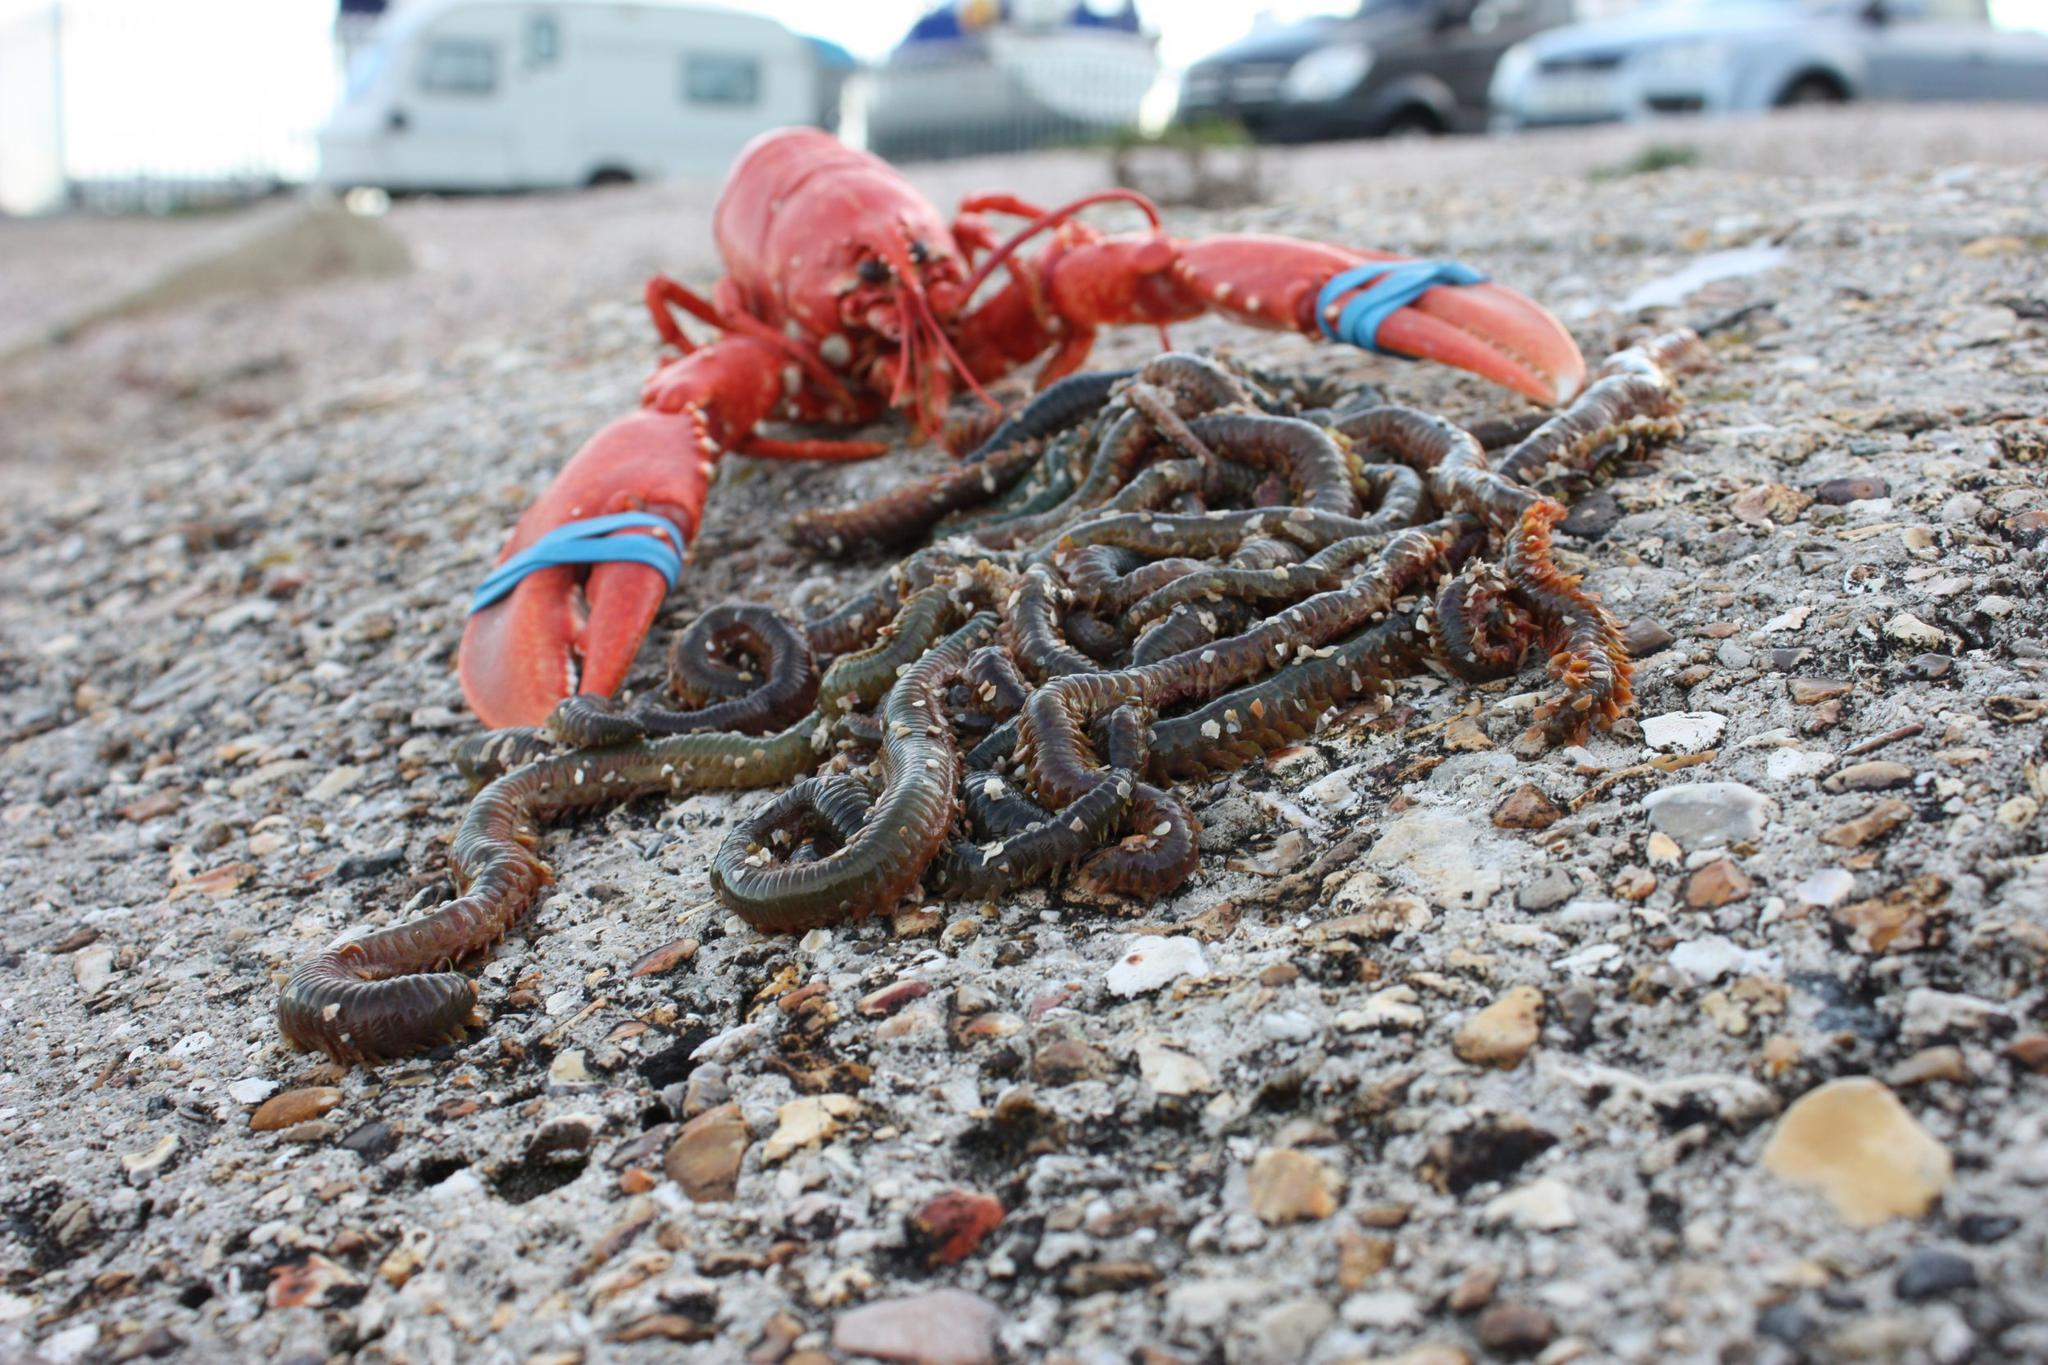 Blood worms, like other marine worms, are quite expensive, fetching significantly more per weight than lobsters.